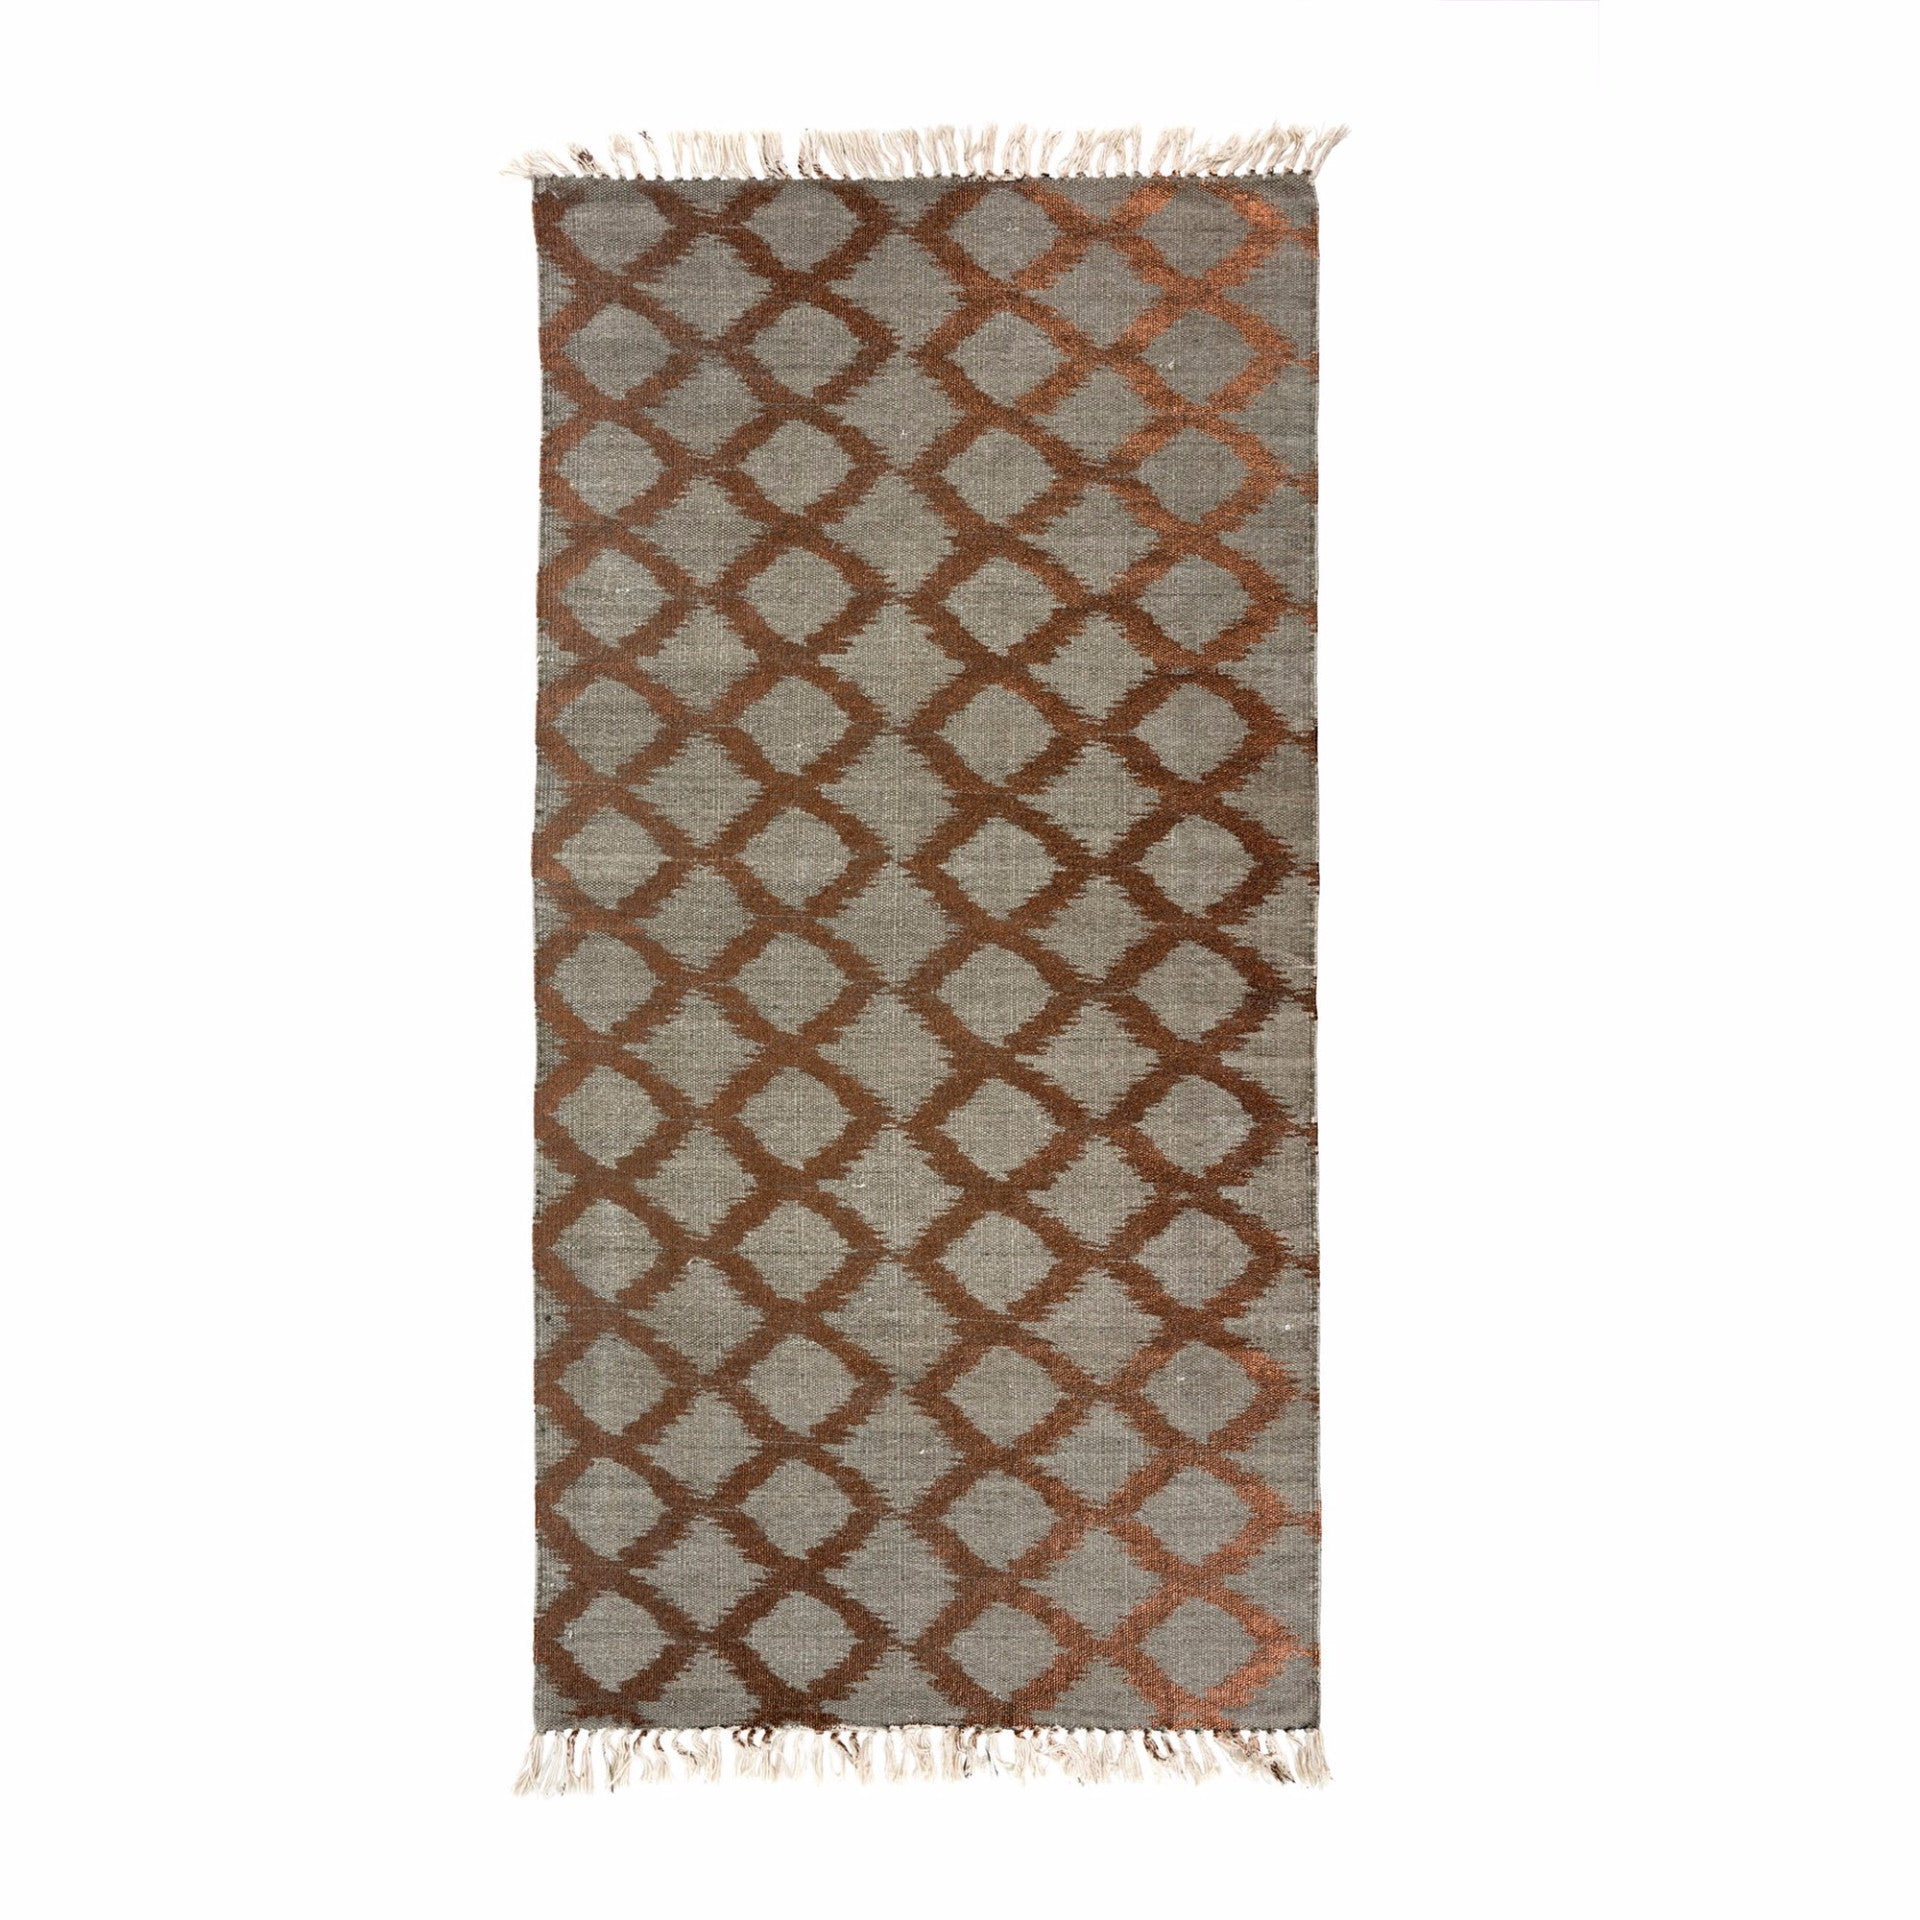 Beiige Copper Foil Print Rug -  Soft Furnishings - Indaba Trading - Putti Fine Furnishings Toronto Canada